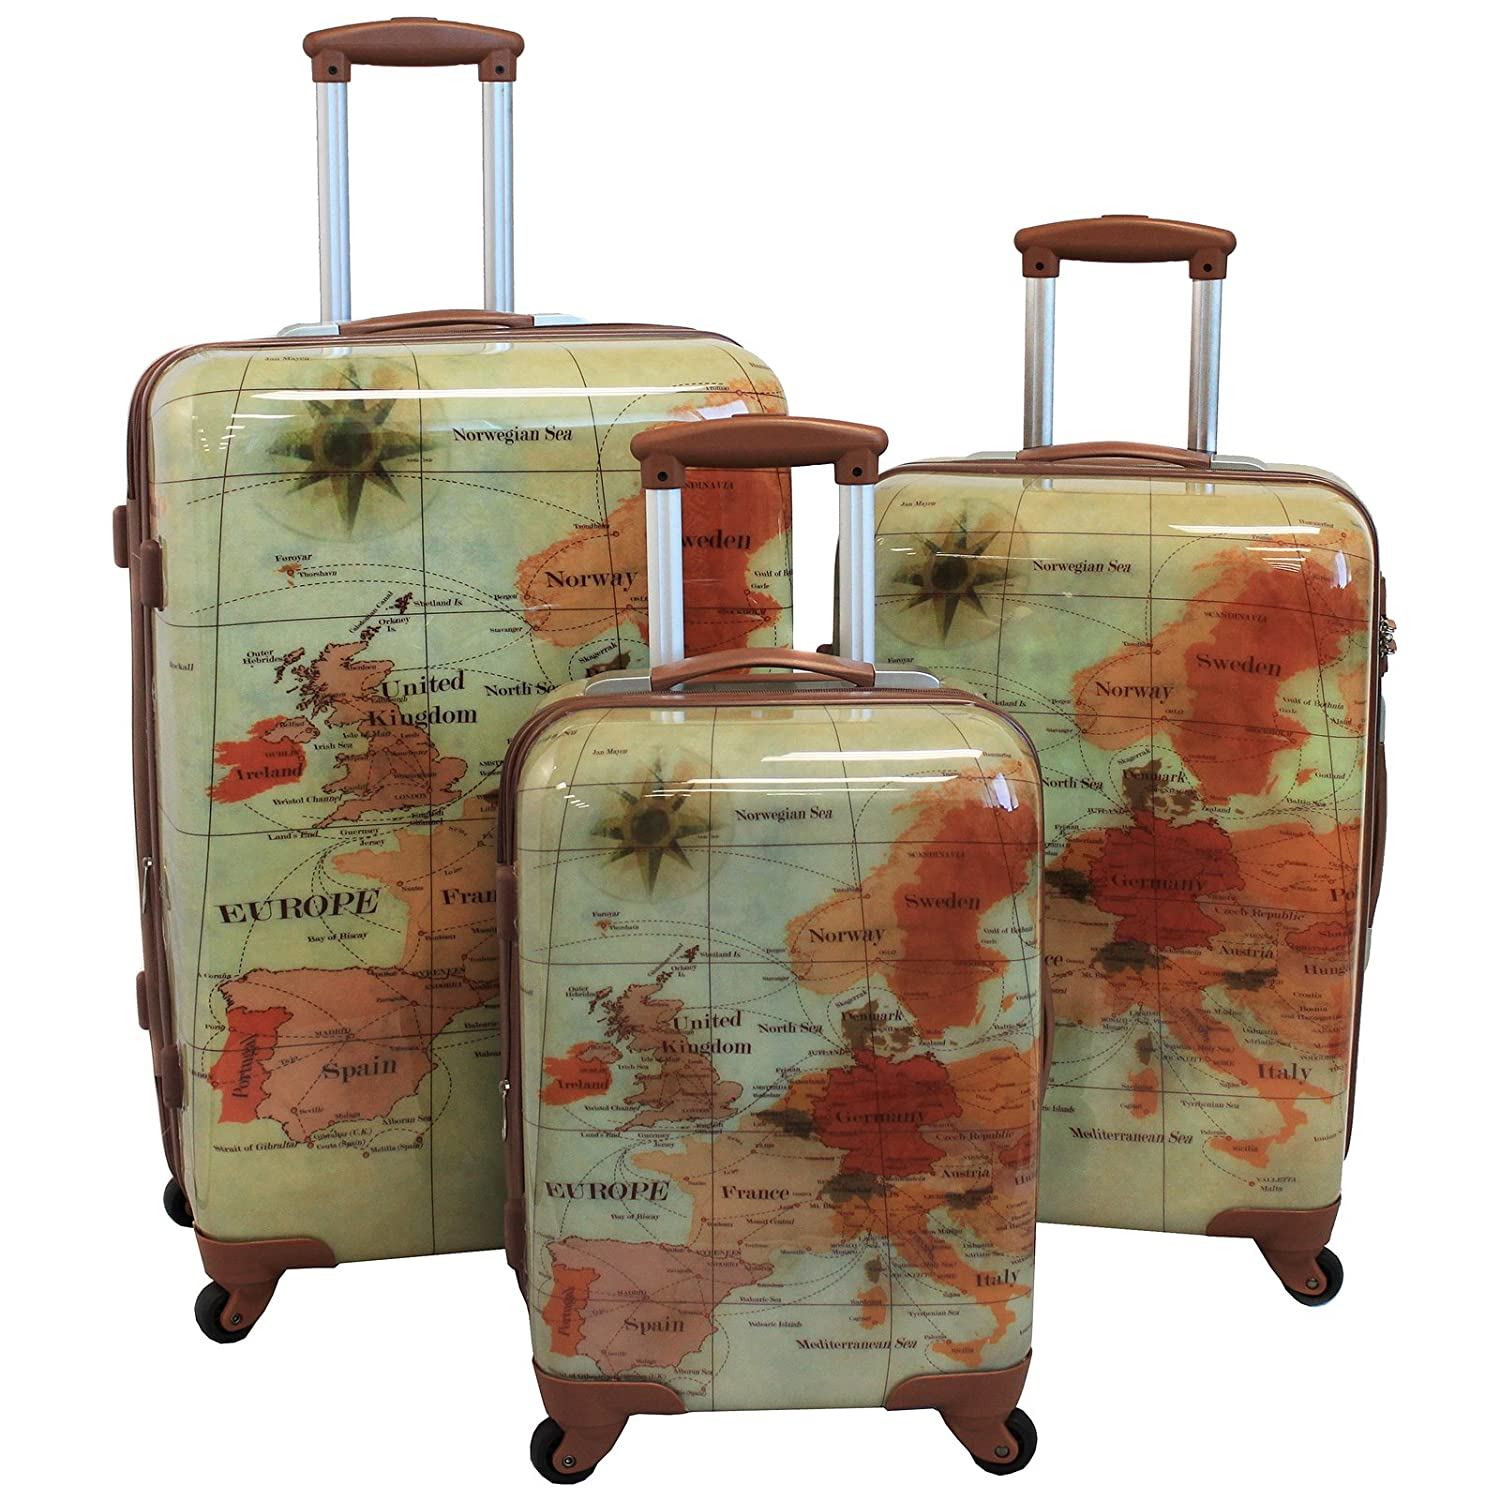 Amazon world traveler the euro 3 piece spinner hardside amazon world traveler the euro 3 piece spinner hardside luggage set with tsa lock luggage sets gumiabroncs Image collections